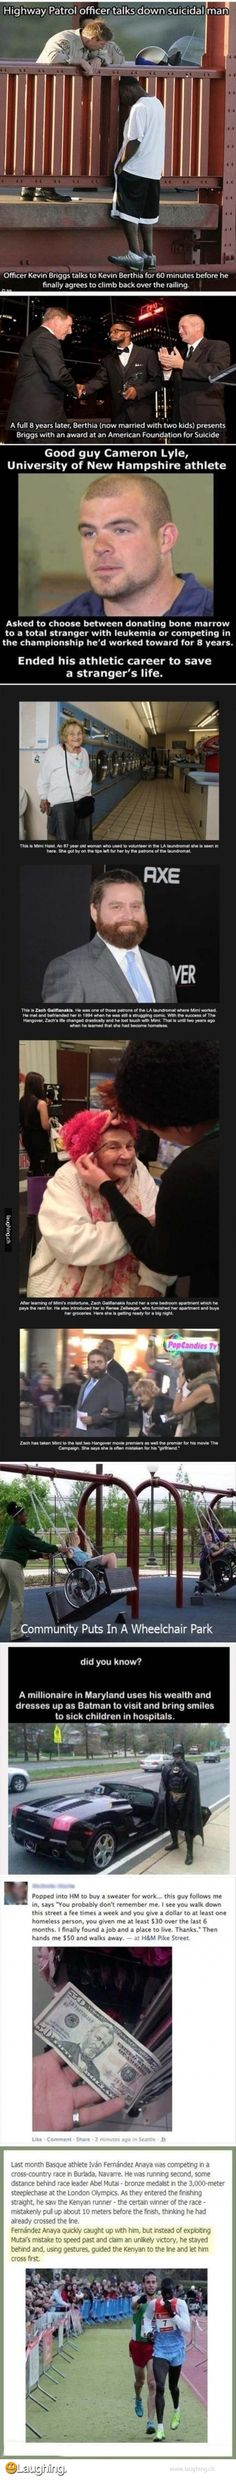 Faith in humanity: restored.